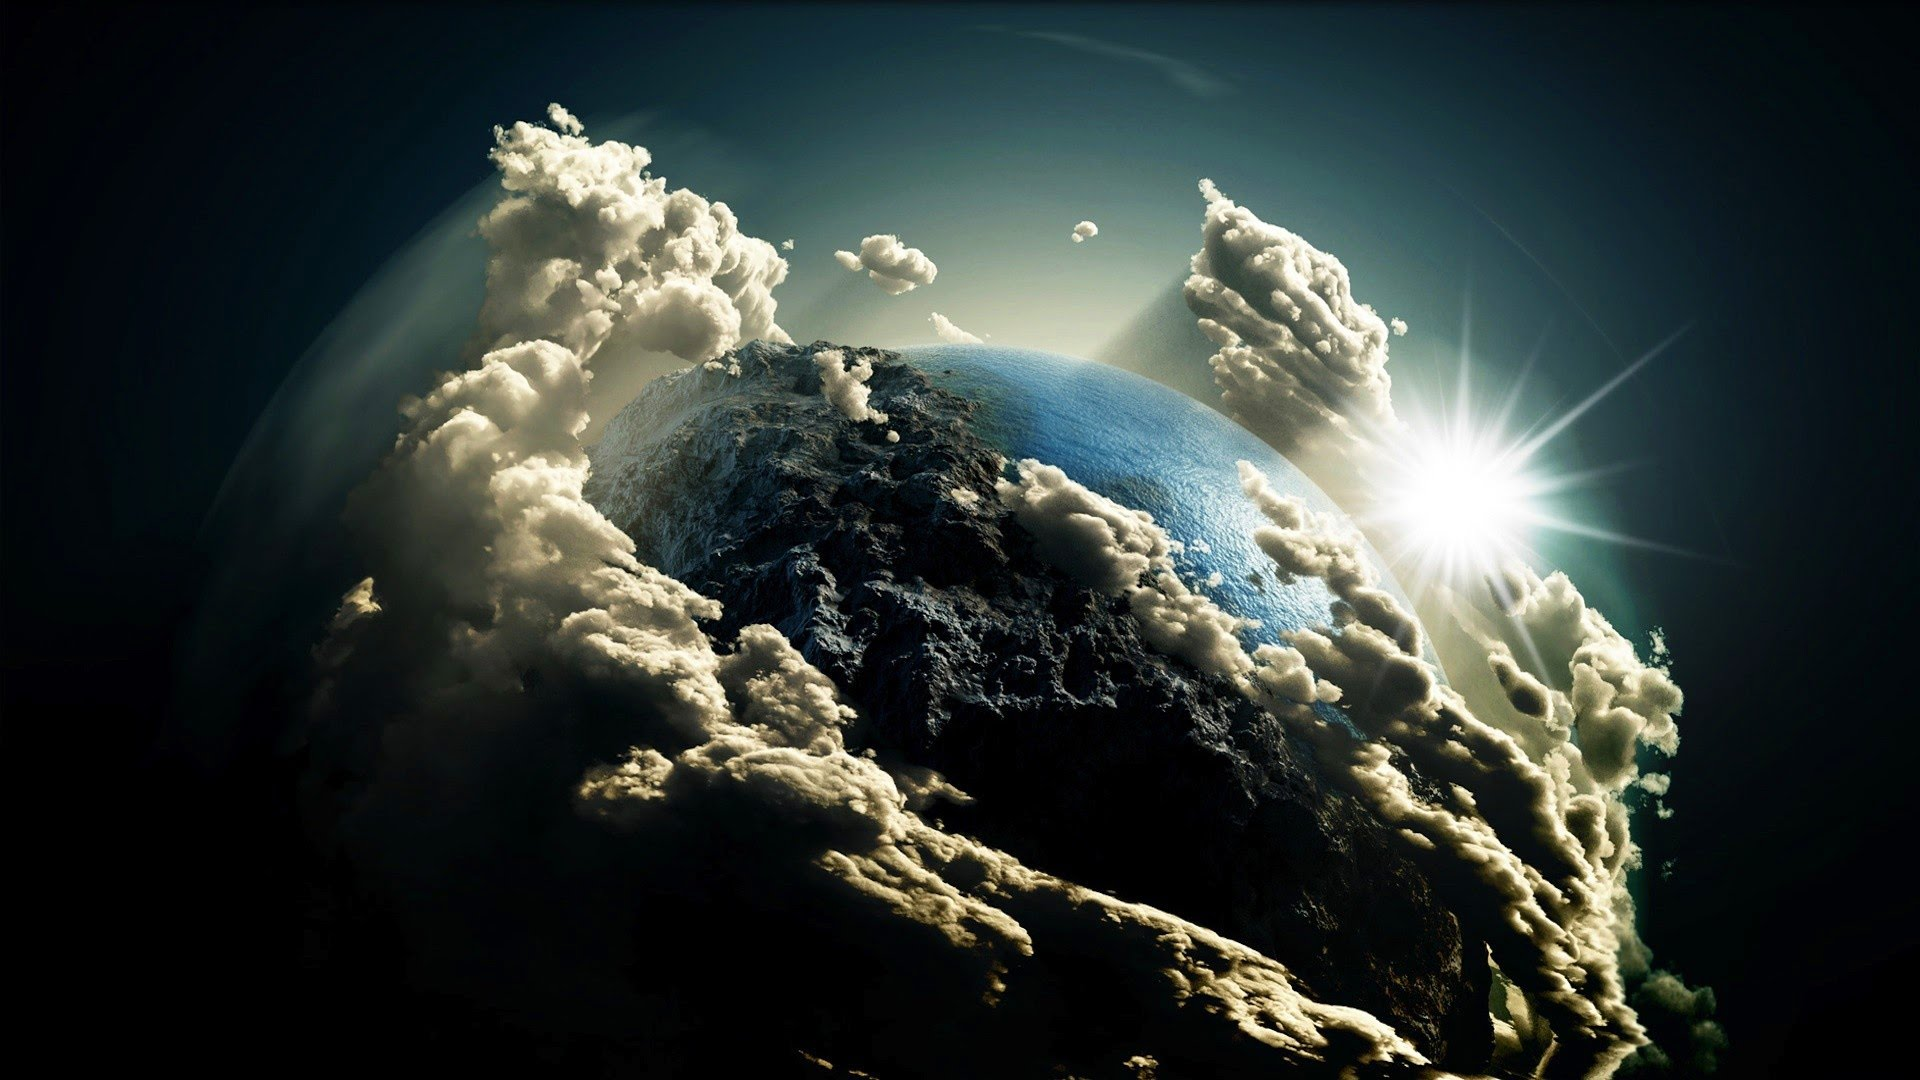 mother-earth-wallpapers-hd-resolution-For-Free-Wallpaper.jpg